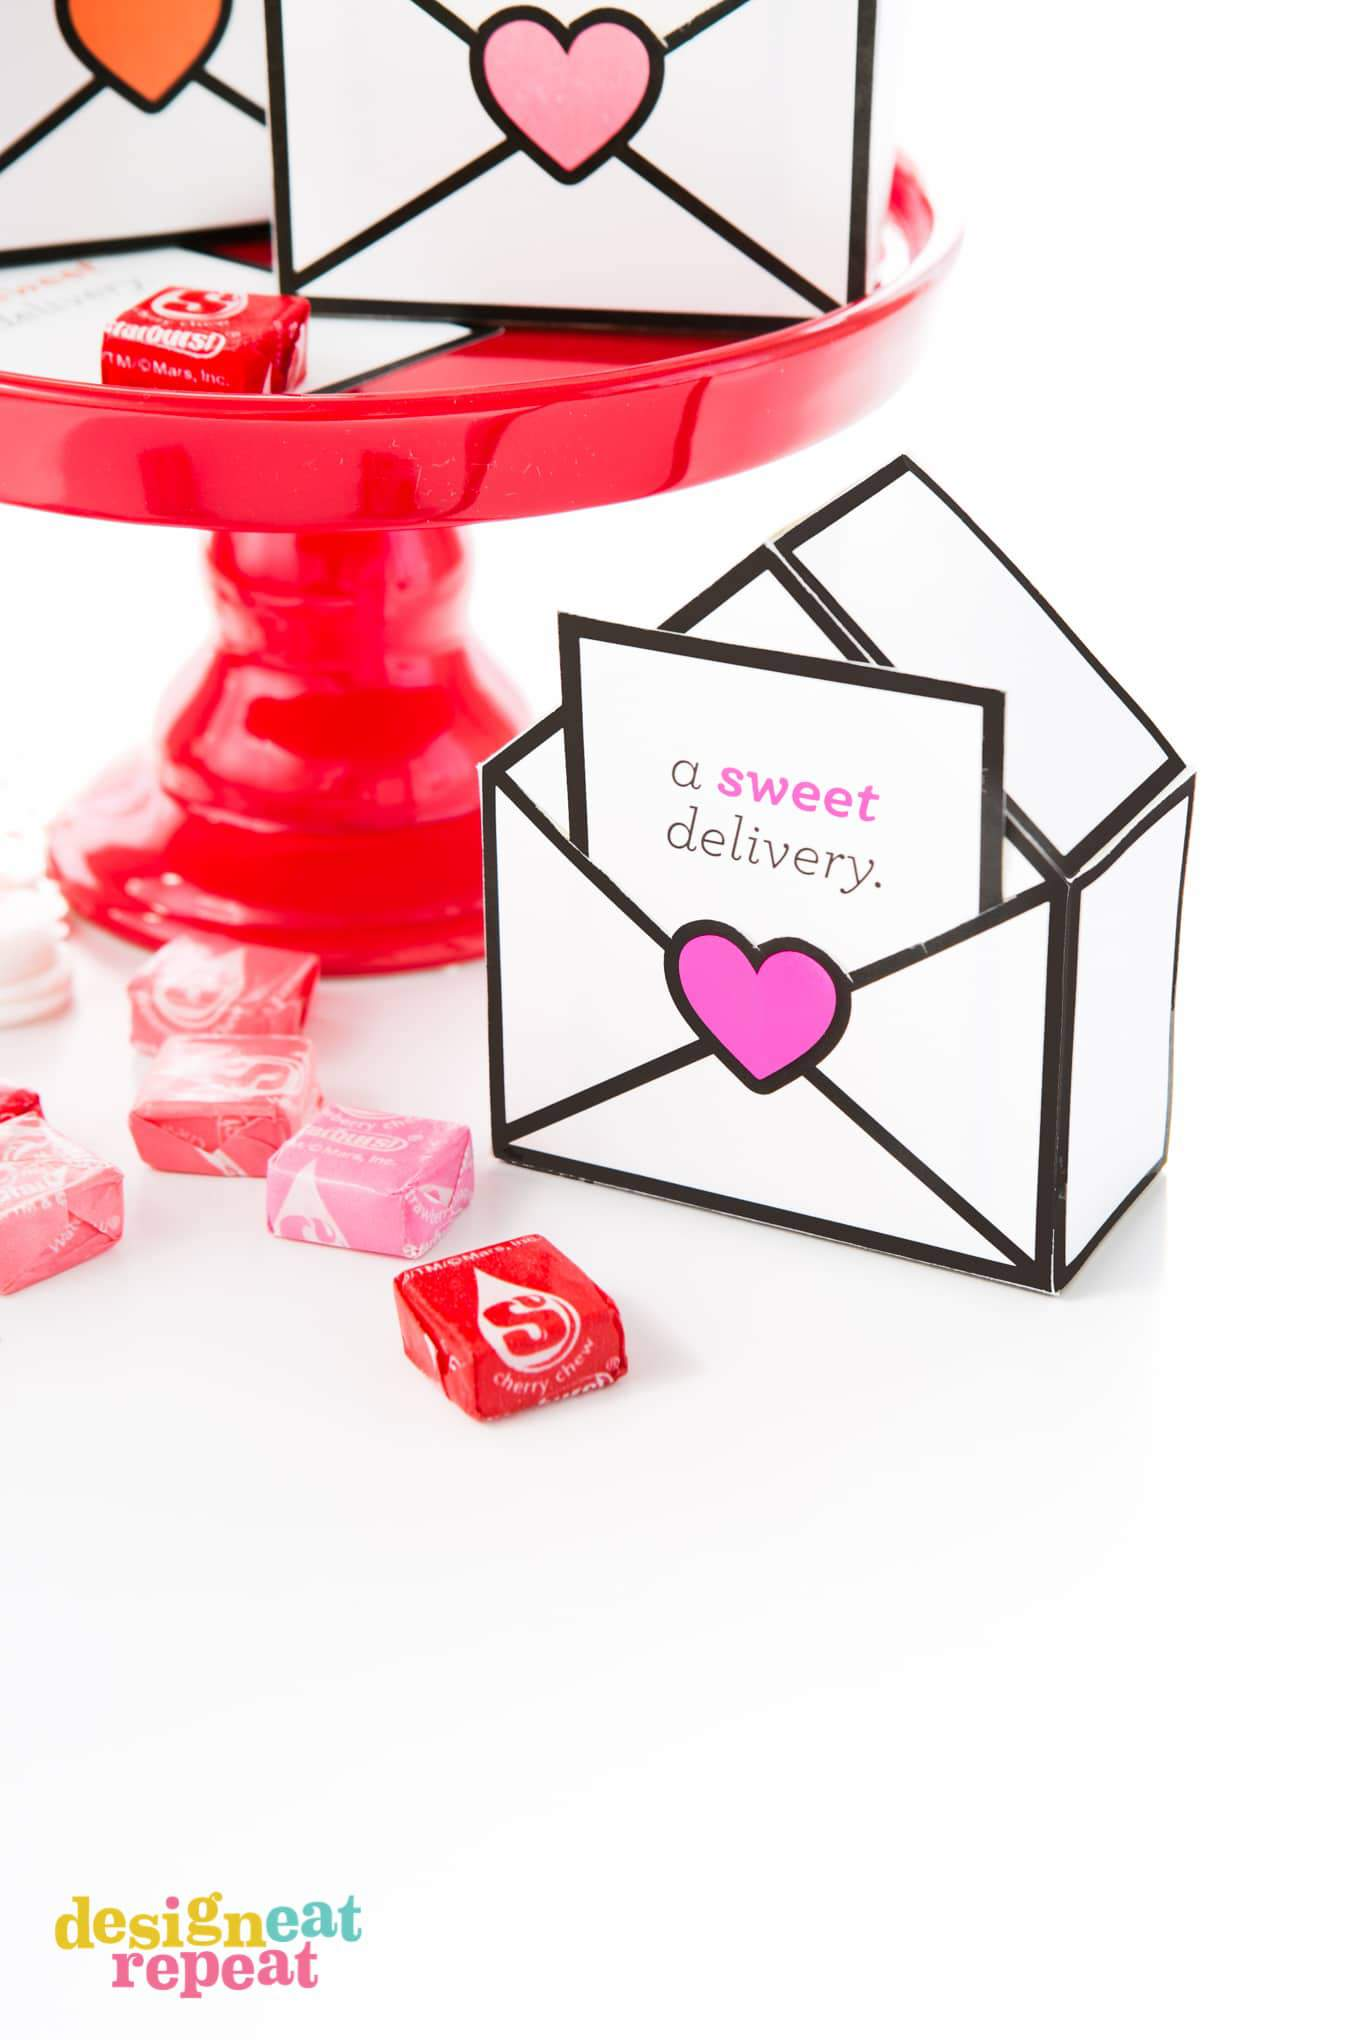 Fun & interactive printable Valentine's Day candy boxes - free to download!